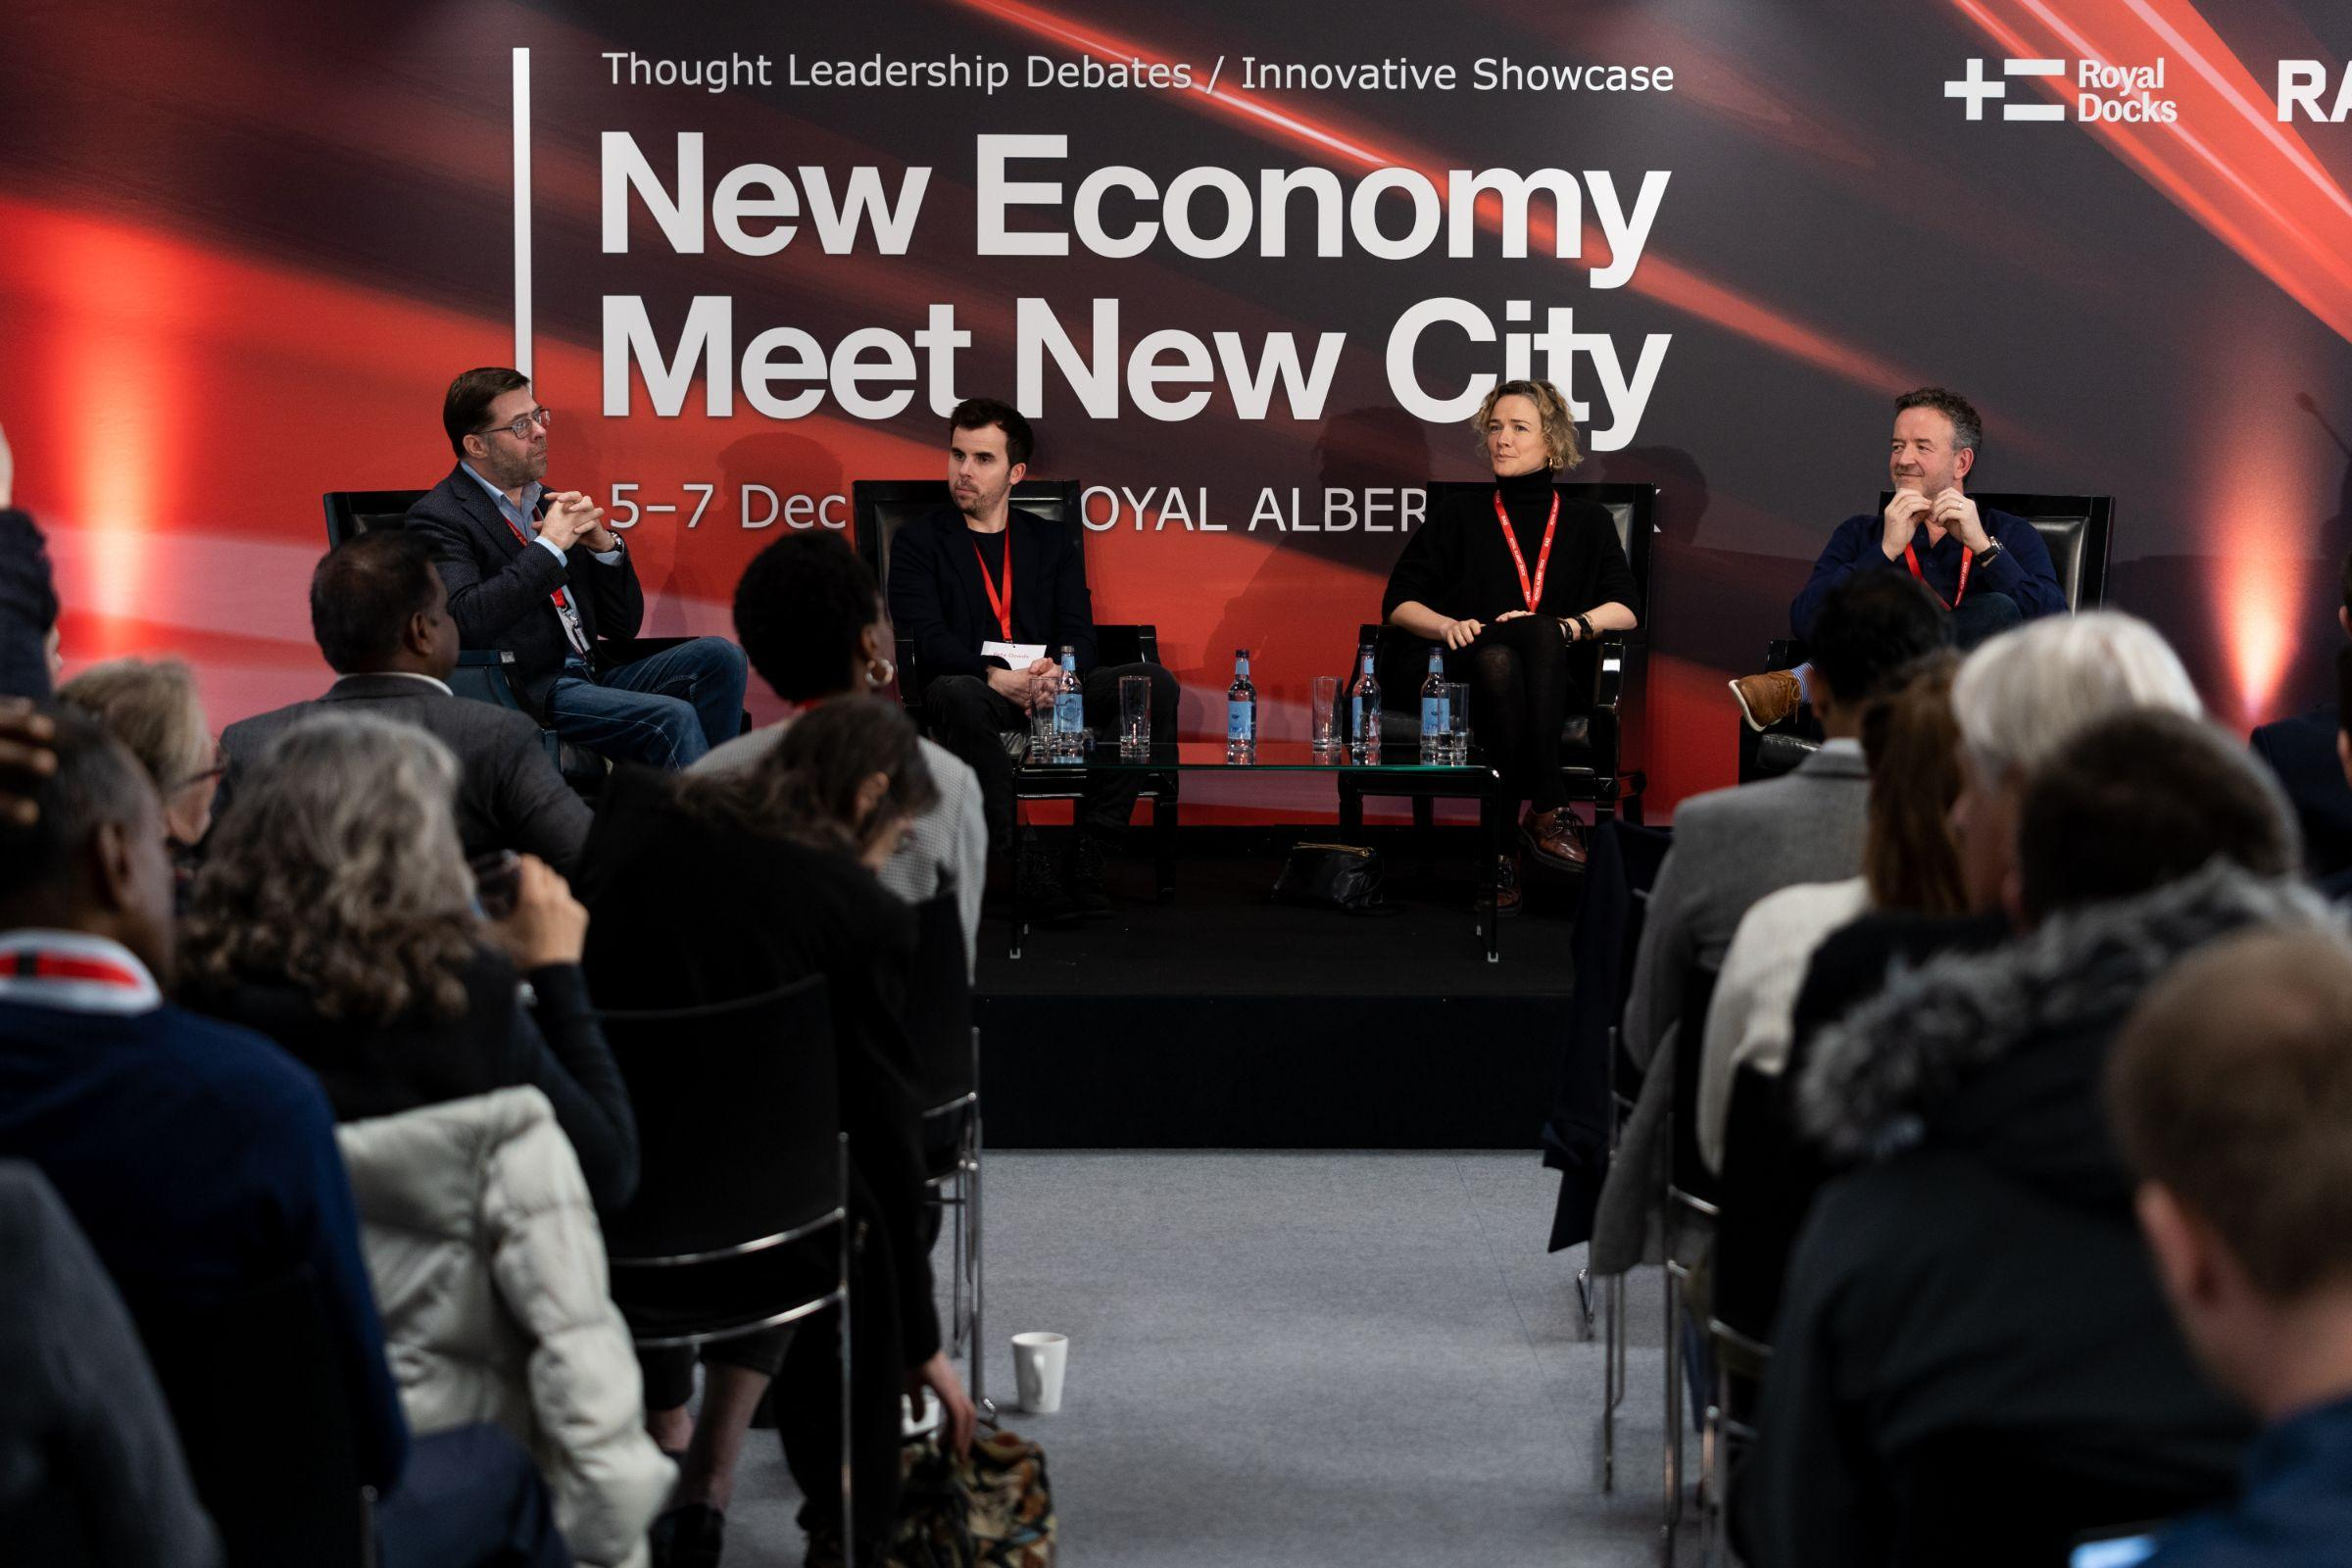 ABP event day New Economy Meet New City